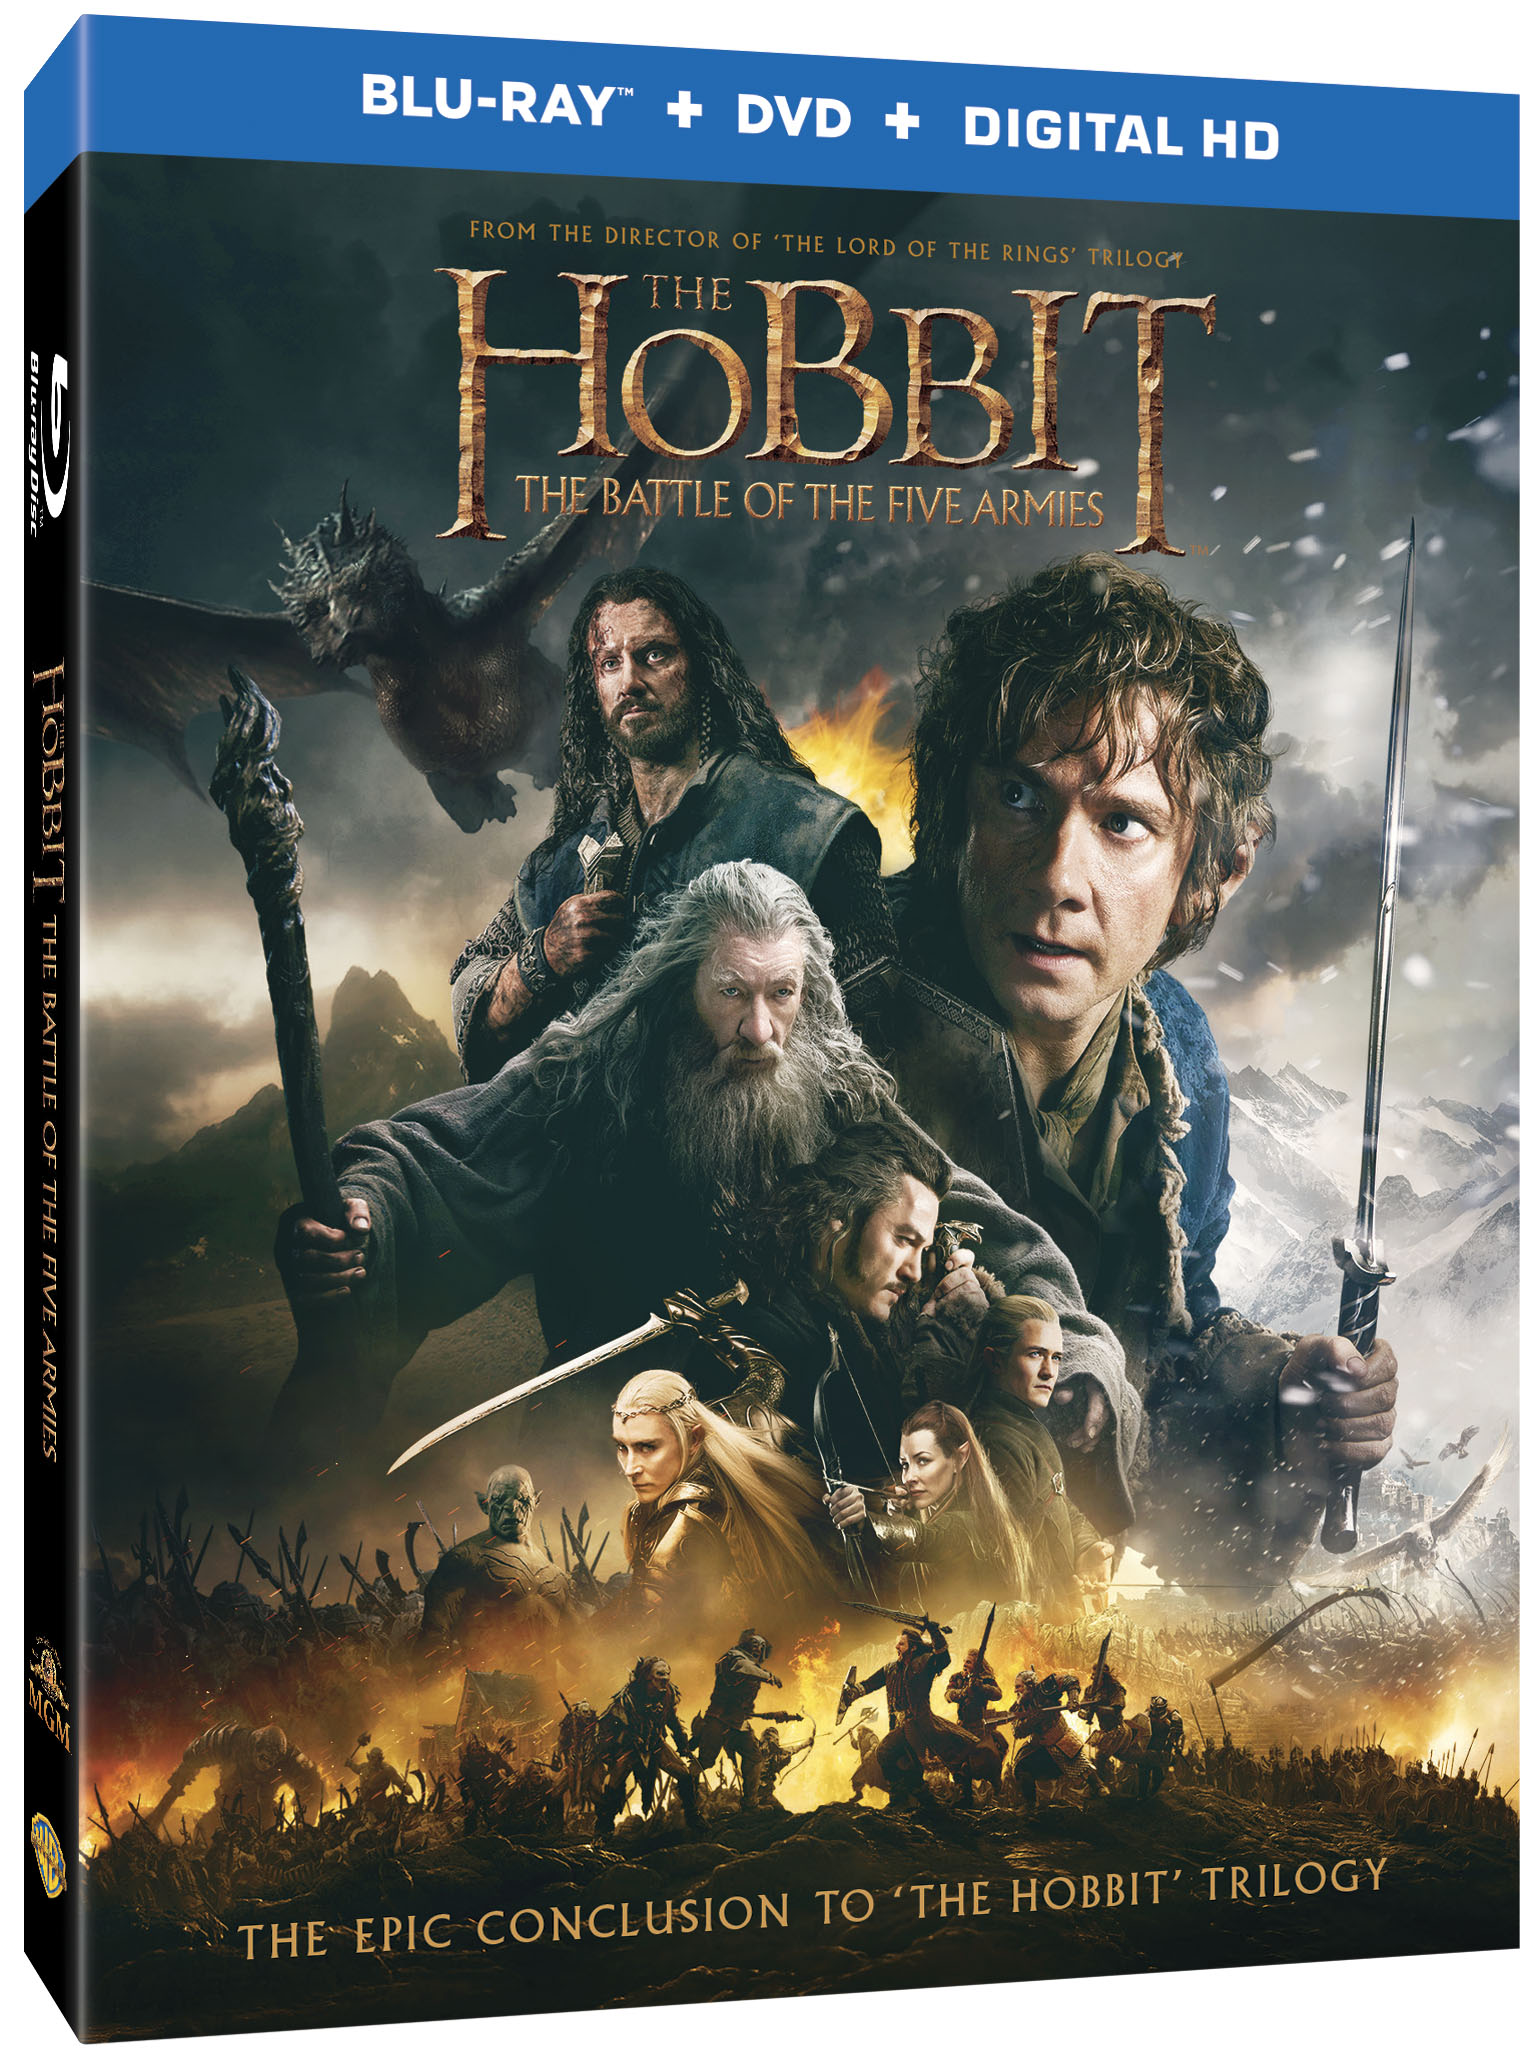 when does the new hobbit come out on dvd